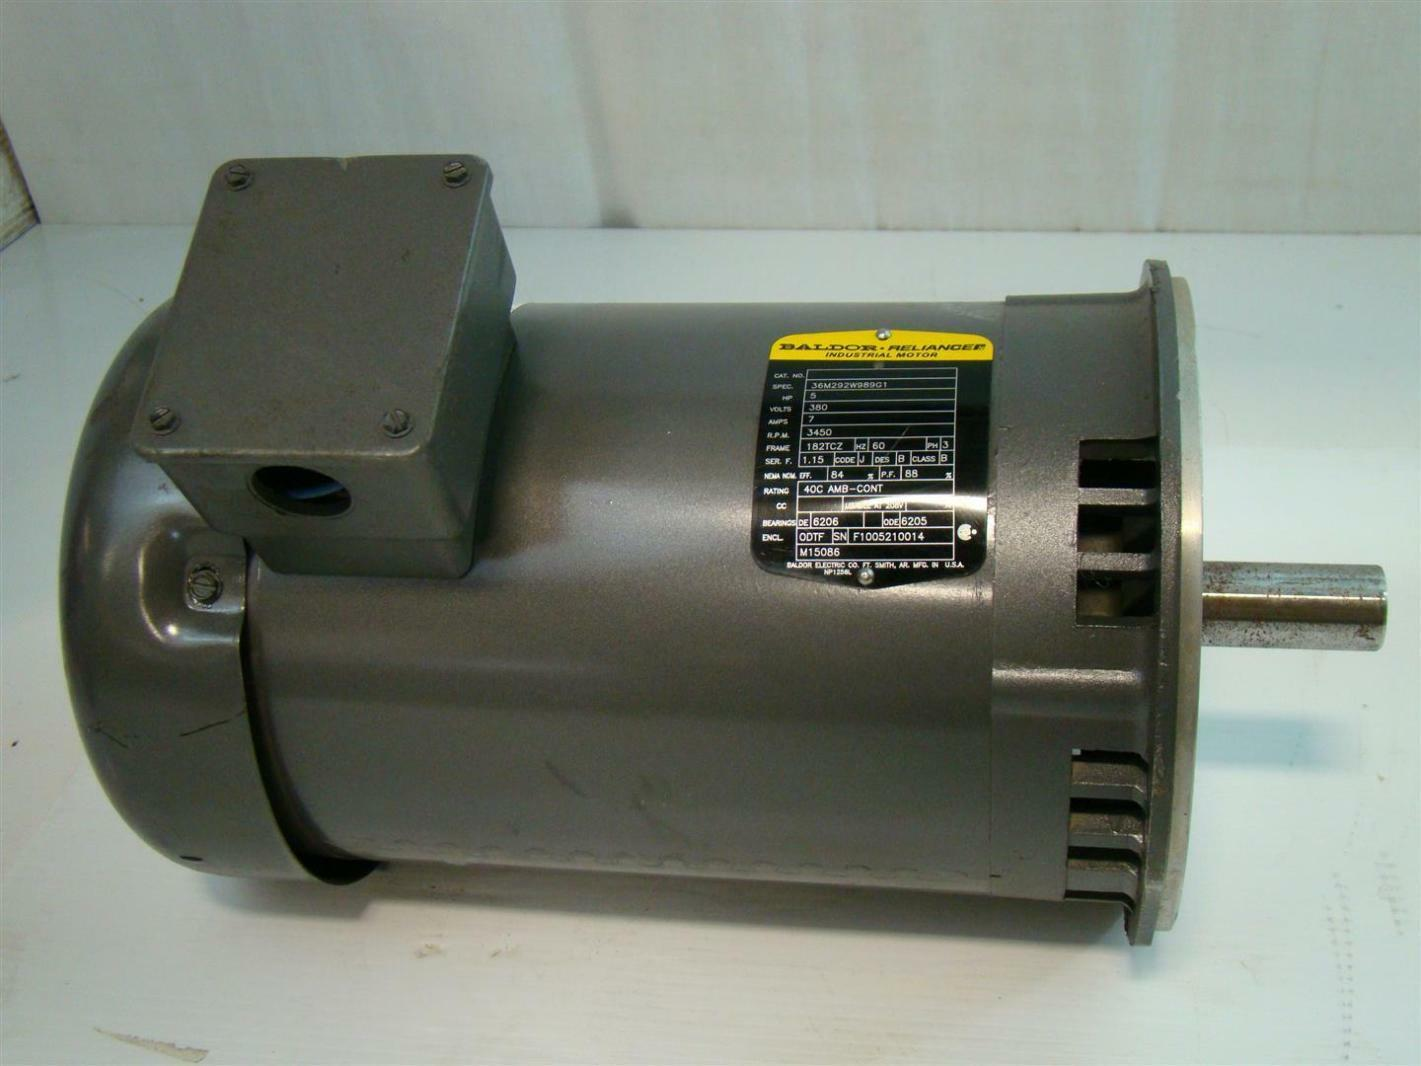 Baldor reliance electric motor 5hp 380v 3450rpm 60hz 3ph for Baldor electric motor parts